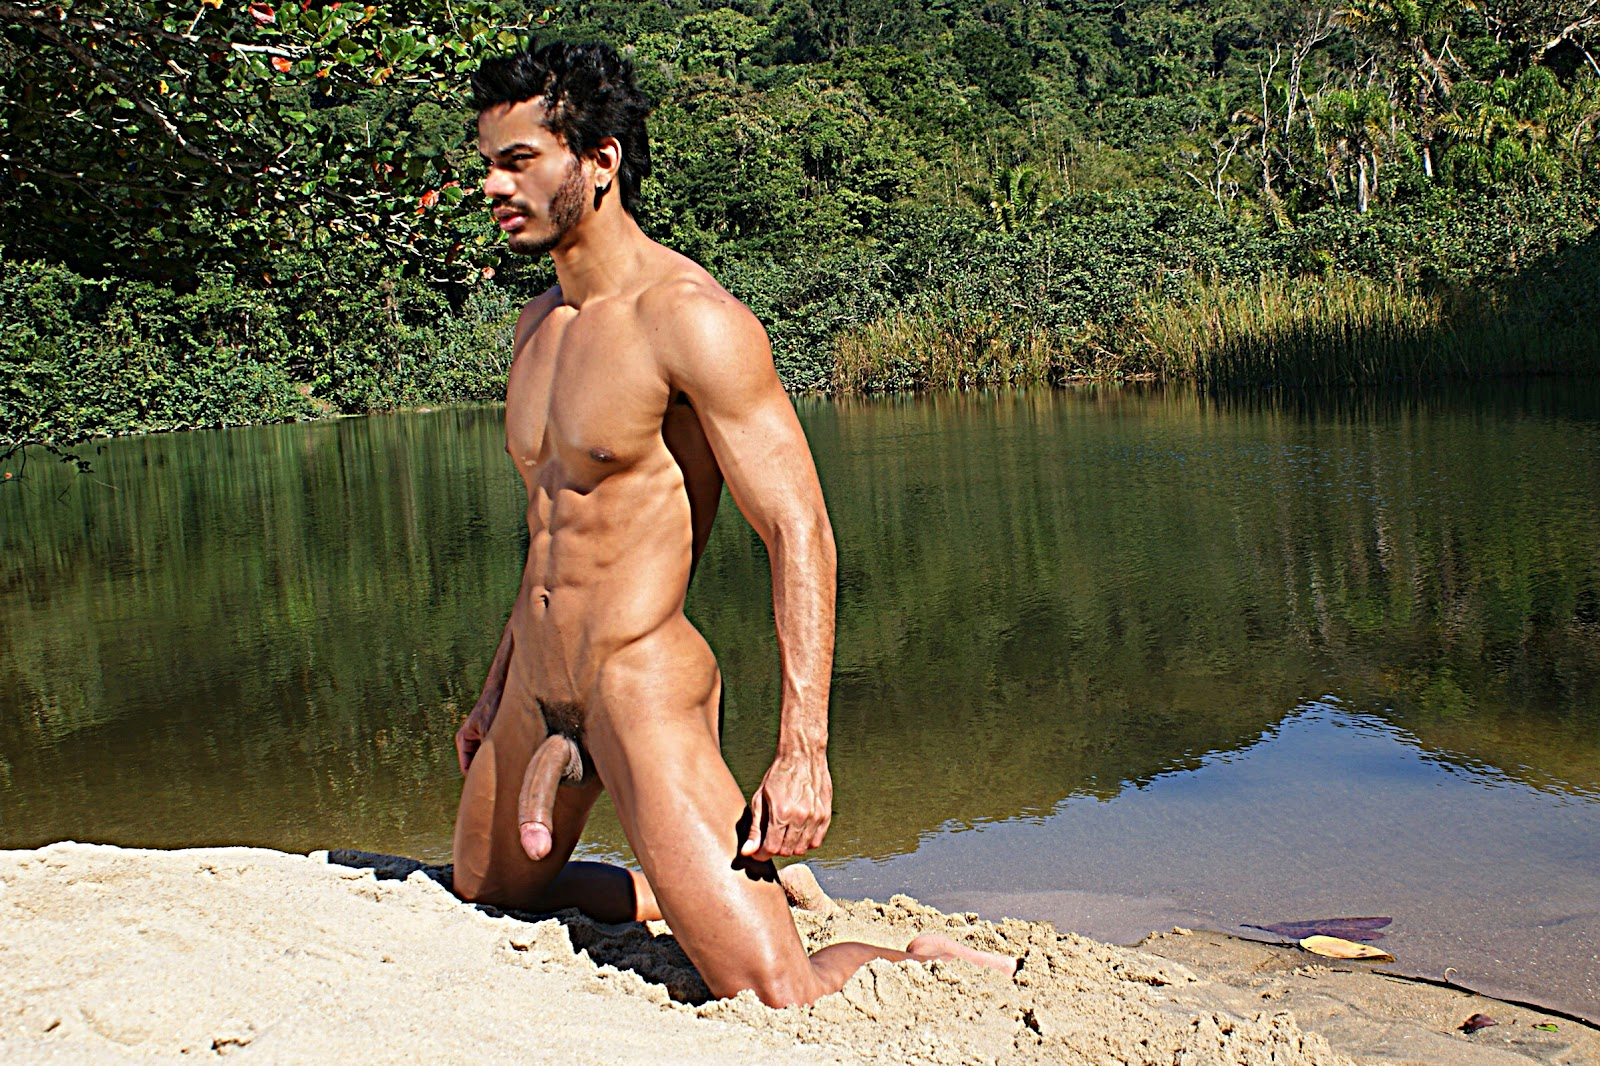 Blonde nude hispanic males and curvy